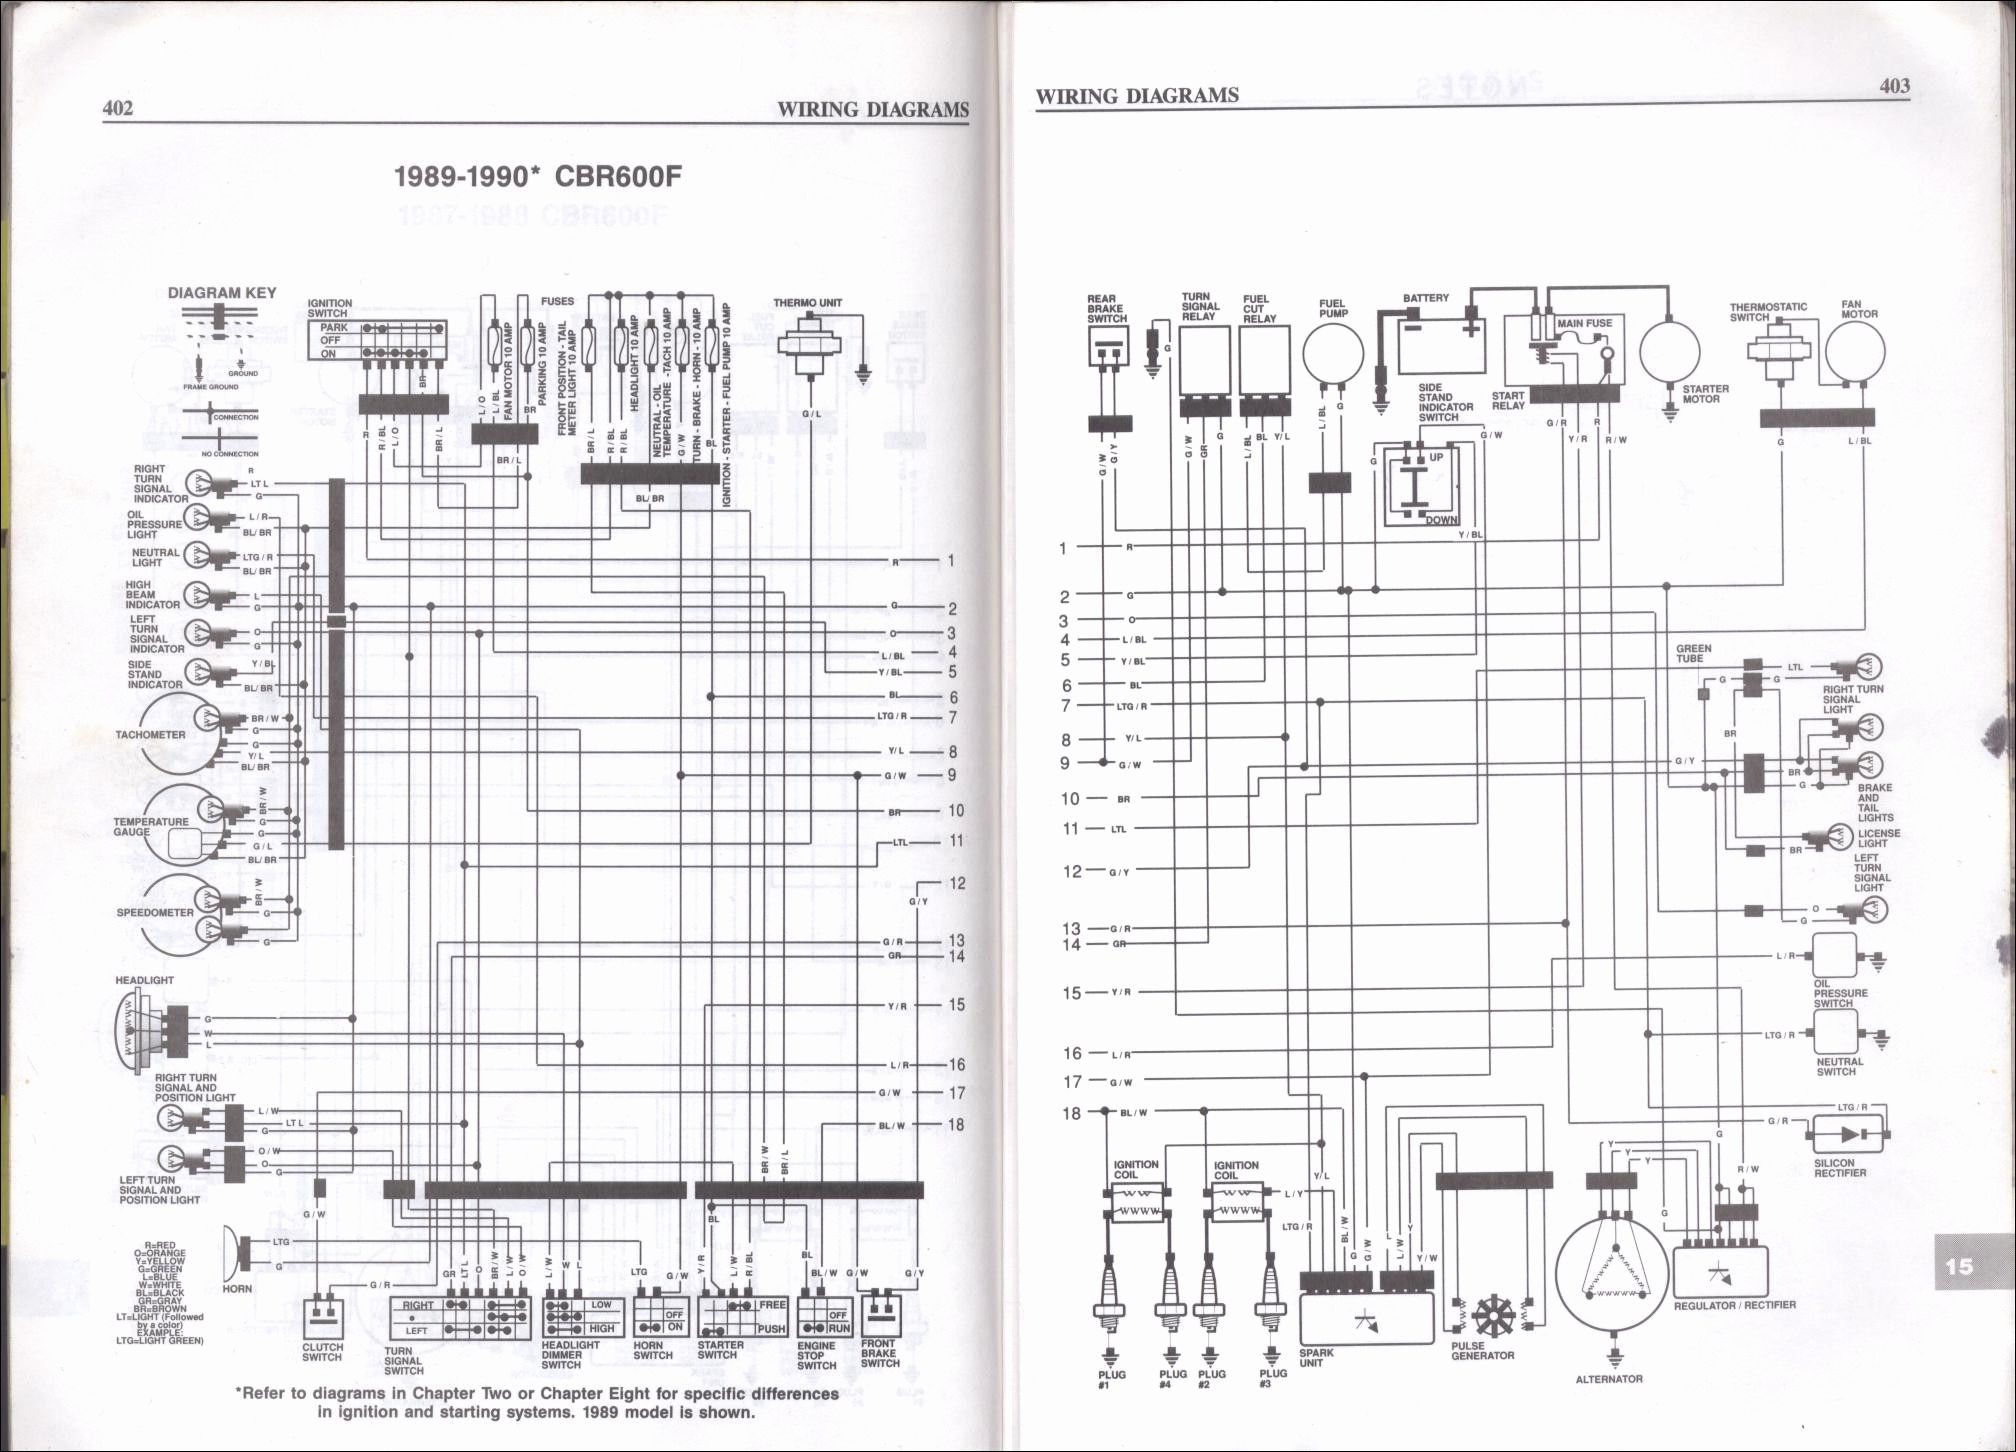 John Deere 4020 Wiring Diagram Honda C70 Wiring Diagram Auto Electrical Wiring Diagram Of John Deere 4020 Wiring Diagram